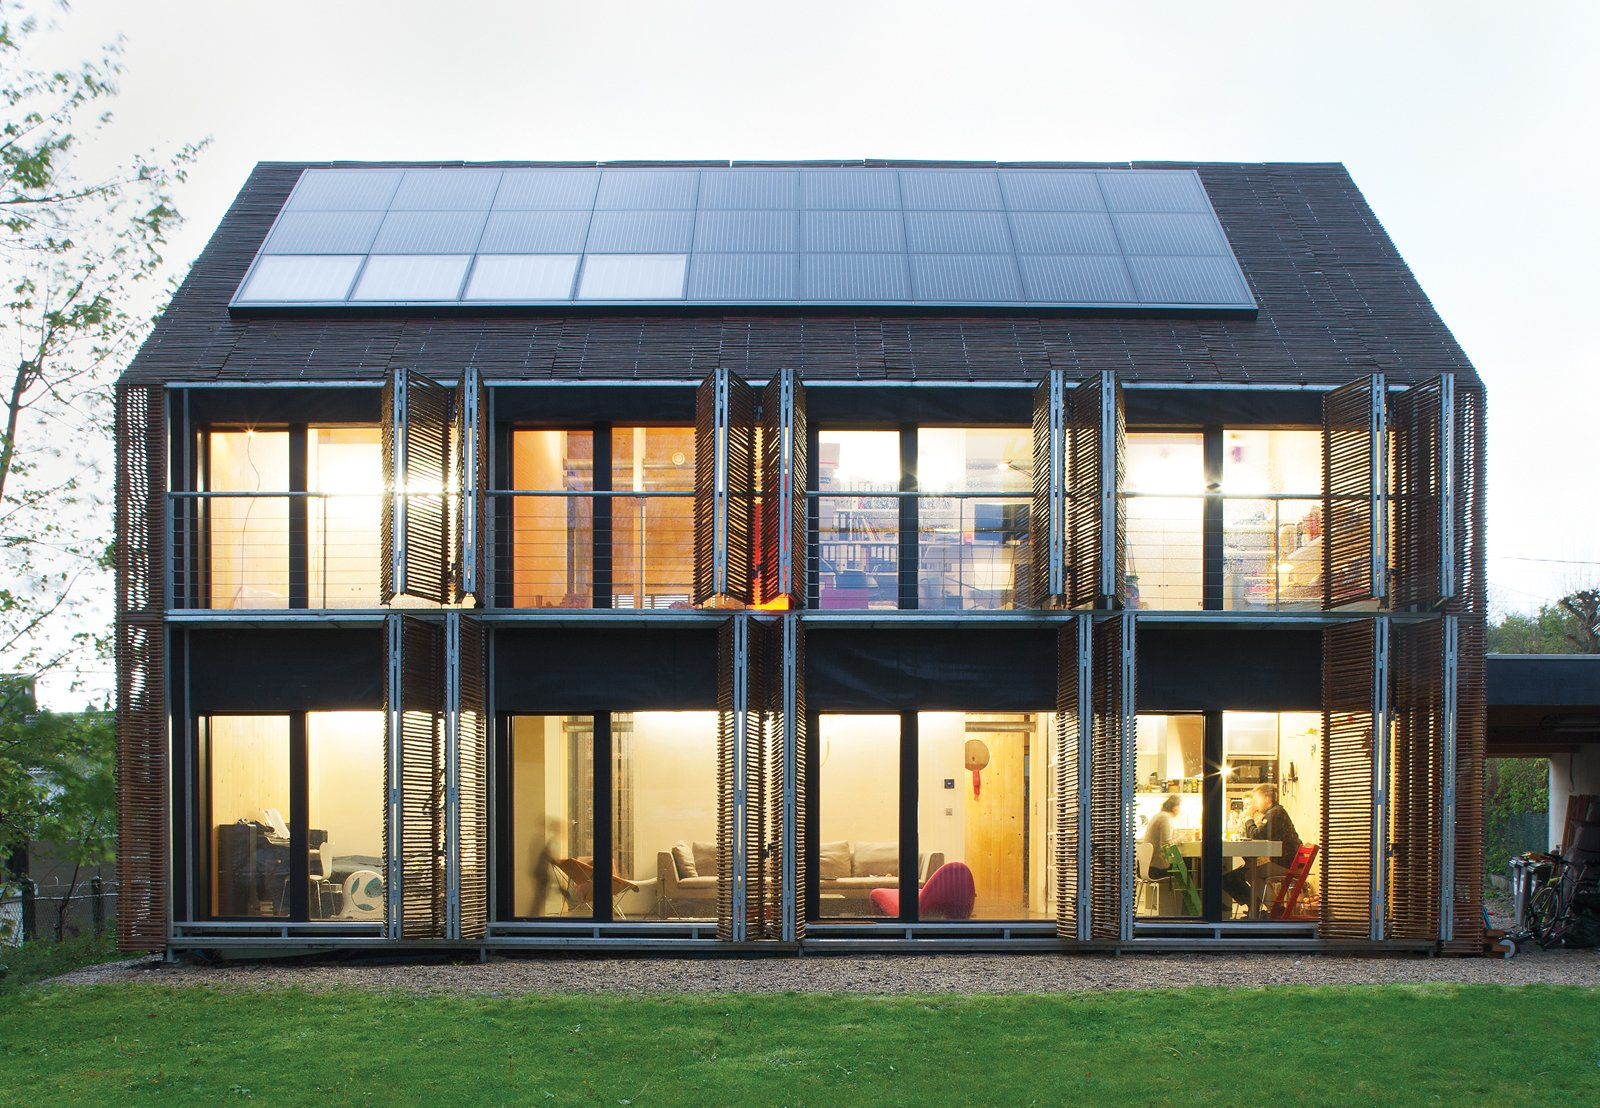 Outdoor, Back Yard, and Grass Among the first Passive Houses in France, this bamboo-clad farmhouse by the Parisian firm Karawitz Architecture only uses a tenth of the energy a conventionally constructed home does. Photo by Nicholas Calcott.  Photos from Passive Acceptance: 7 Energy-Efficient Homes